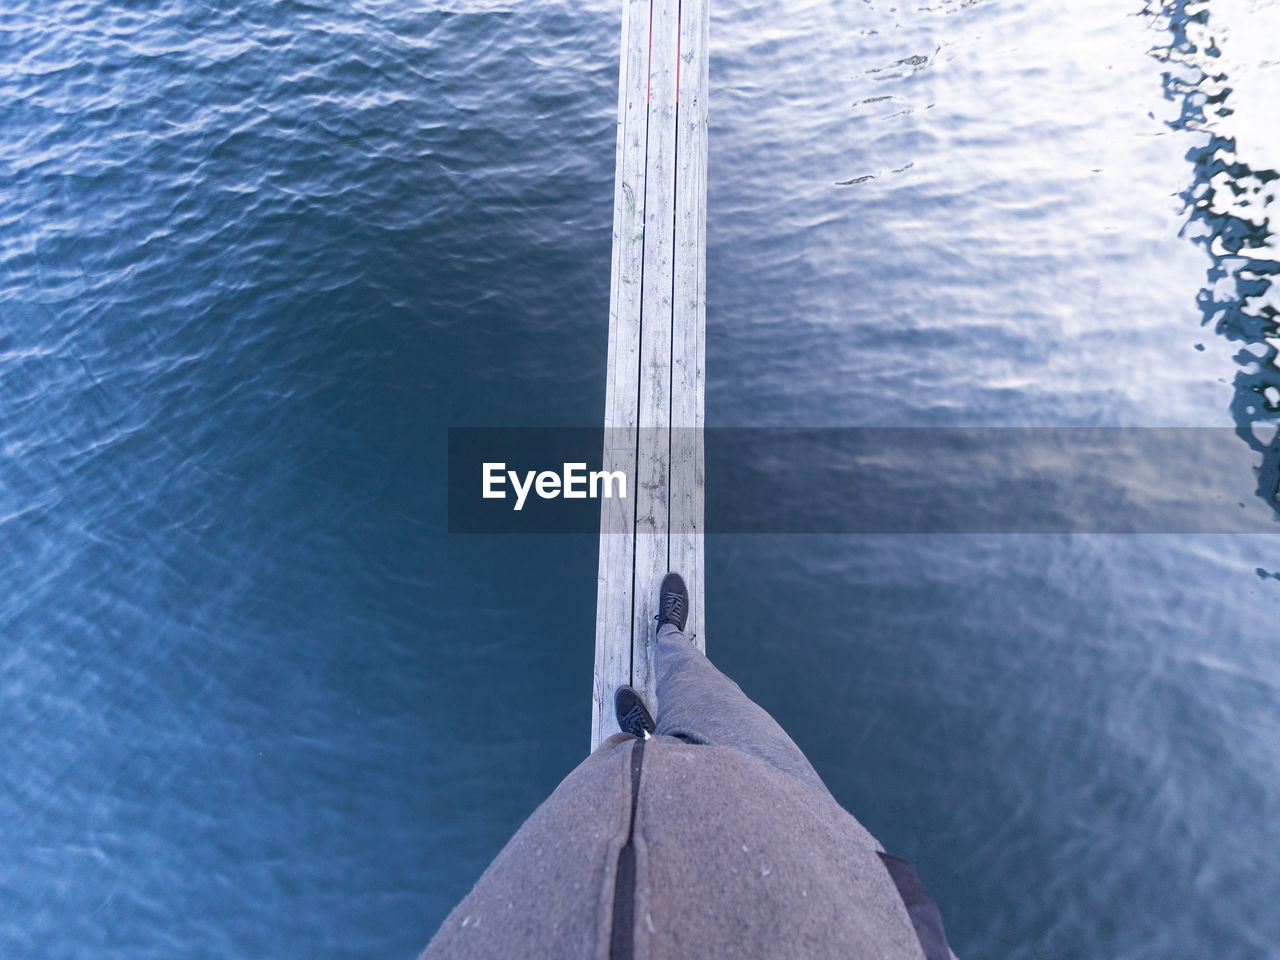 High angle view of man balancing on beam over water